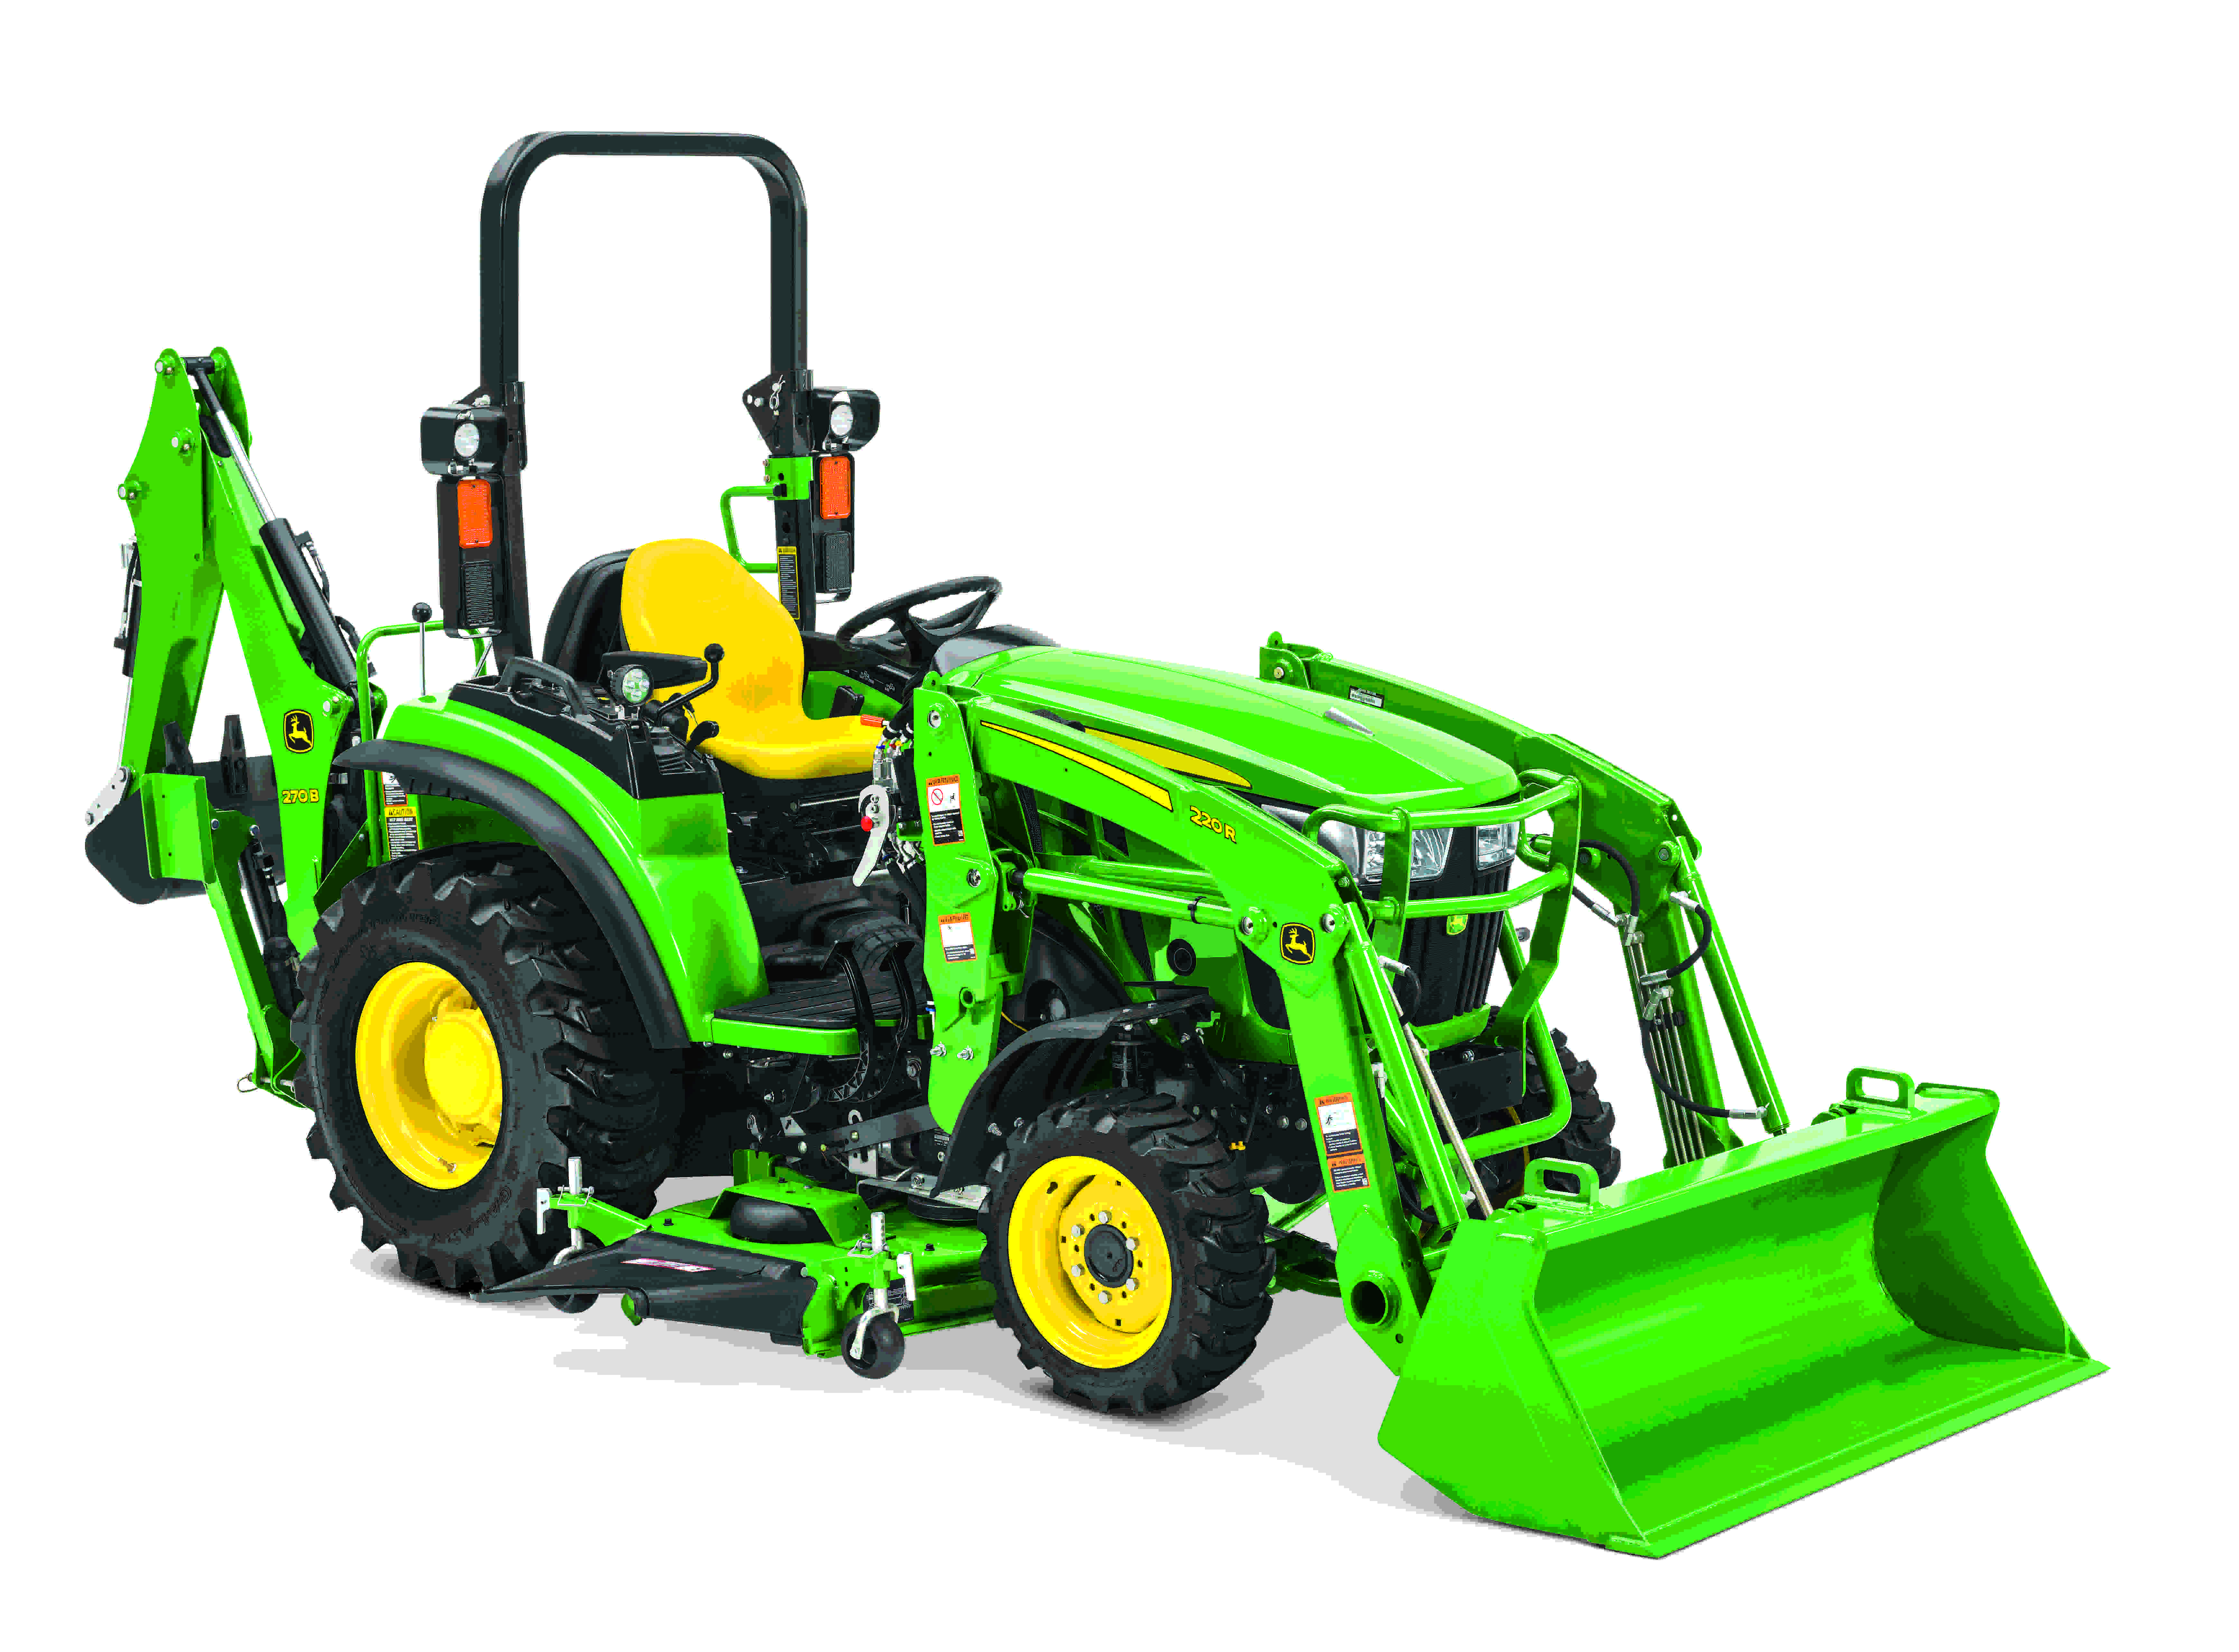 John Deere expands two compact utility tractor series